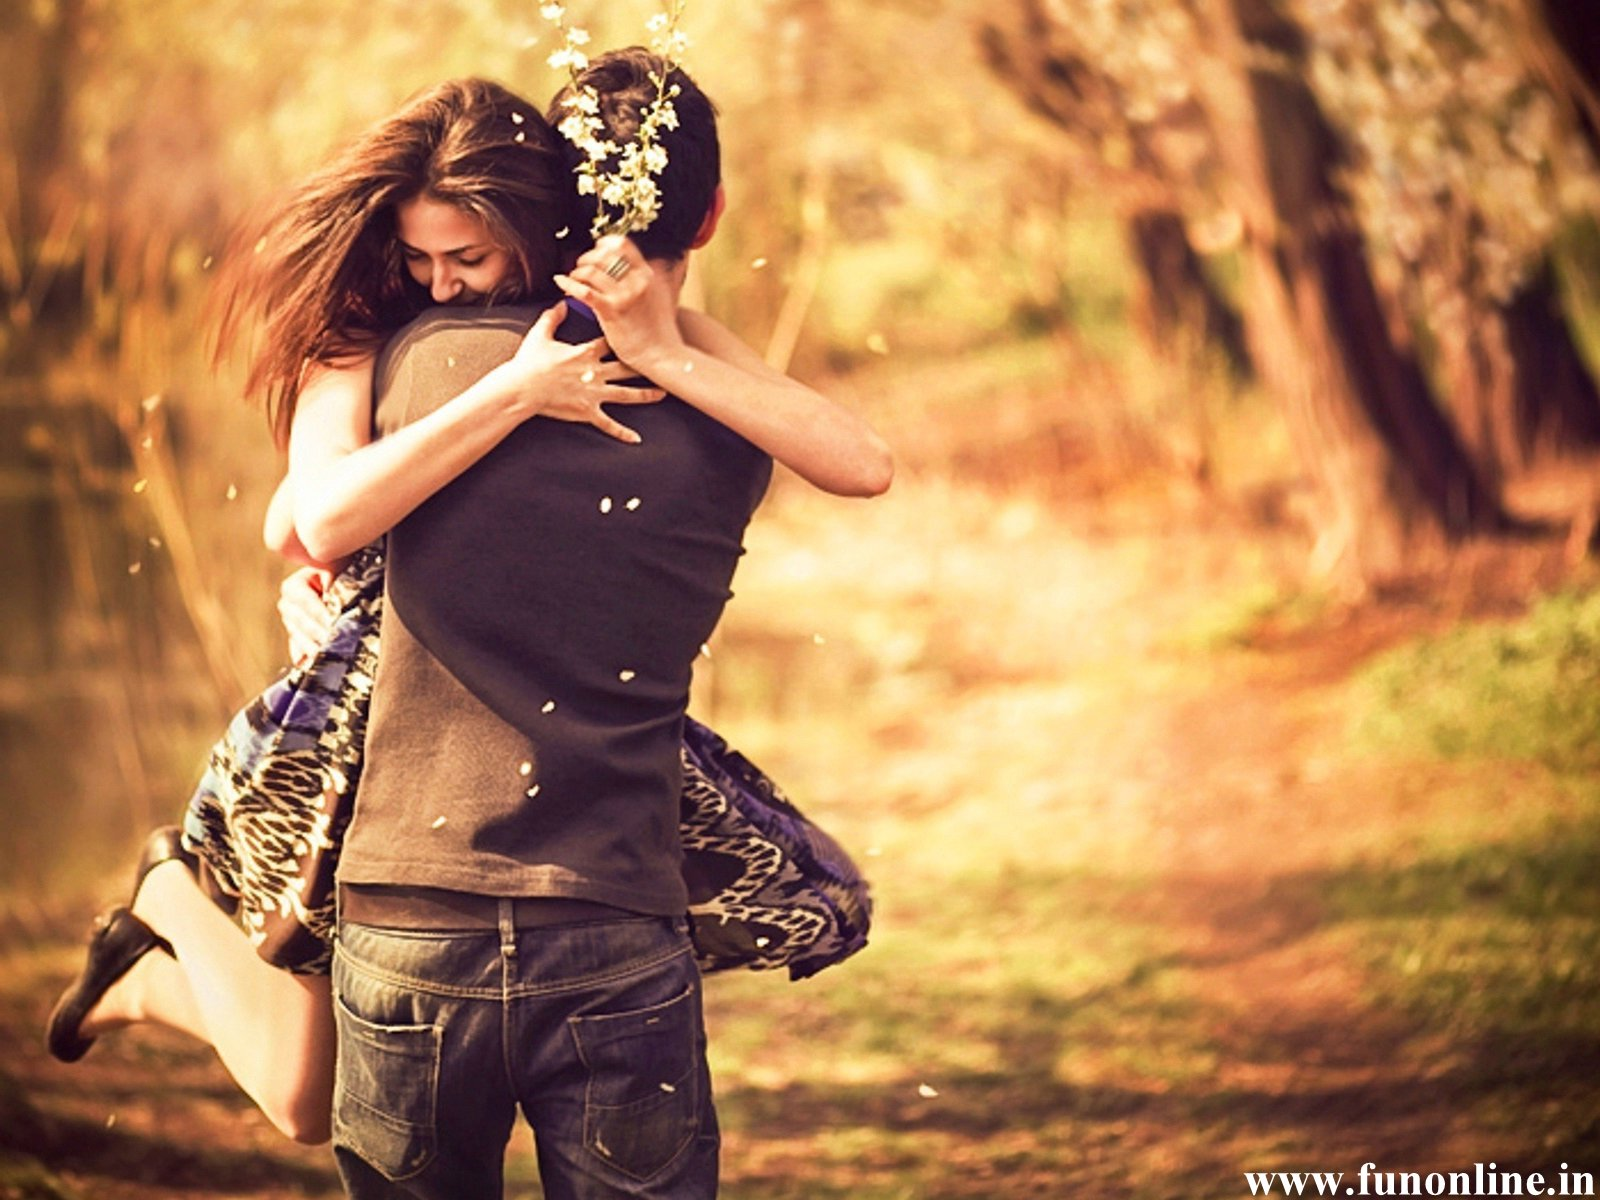 Free Download Love Wallpapers Couples In Love Wallpapers Couple